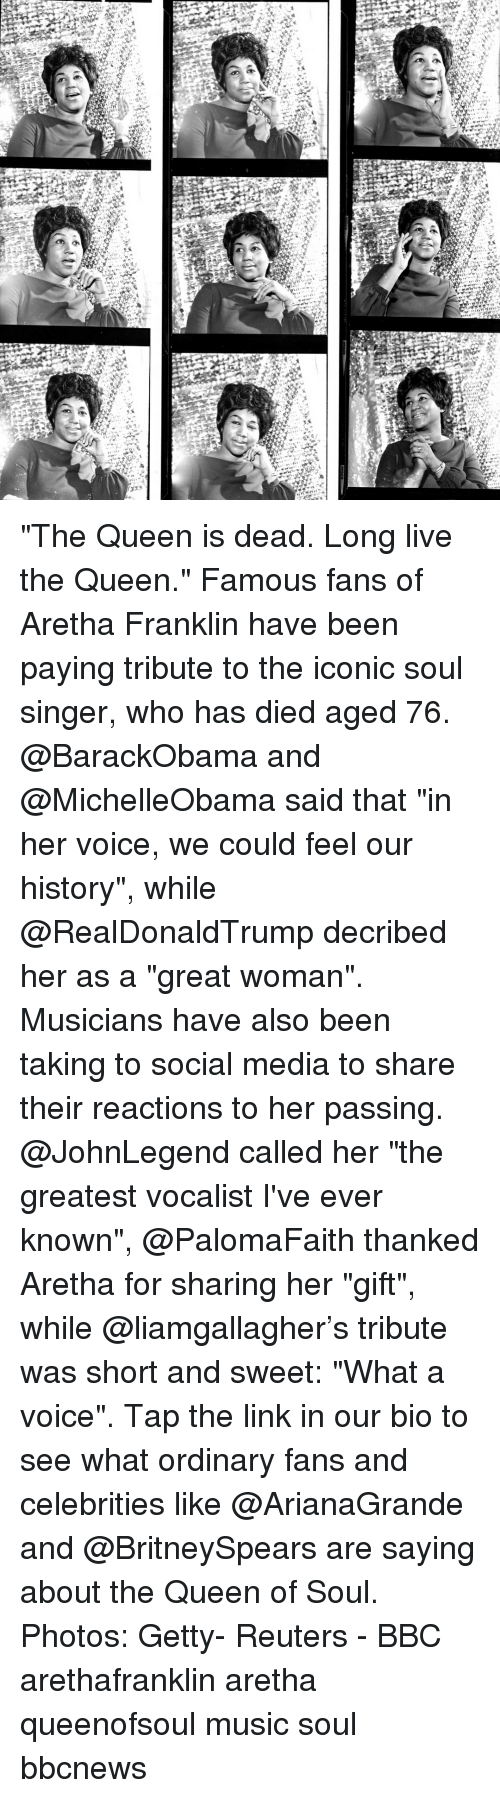 """Aretha Franklin: """"The Queen is dead. Long live the Queen."""" Famous fans of Aretha Franklin have been paying tribute to the iconic soul singer, who has died aged 76. @BarackObama and @MichelleObama said that """"in her voice, we could feel our history"""", while @RealDonaldTrump decribed her as a """"great woman"""". Musicians have also been taking to social media to share their reactions to her passing. @JohnLegend called her """"the greatest vocalist I've ever known"""", @PalomaFaith thanked Aretha for sharing her """"gift"""", while @liamgallagher's tribute was short and sweet: """"What a voice"""". Tap the link in our bio to see what ordinary fans and celebrities like @ArianaGrande and @BritneySpears are saying about the Queen of Soul. Photos: Getty- Reuters - BBC arethafranklin aretha queenofsoul music soul bbcnews"""